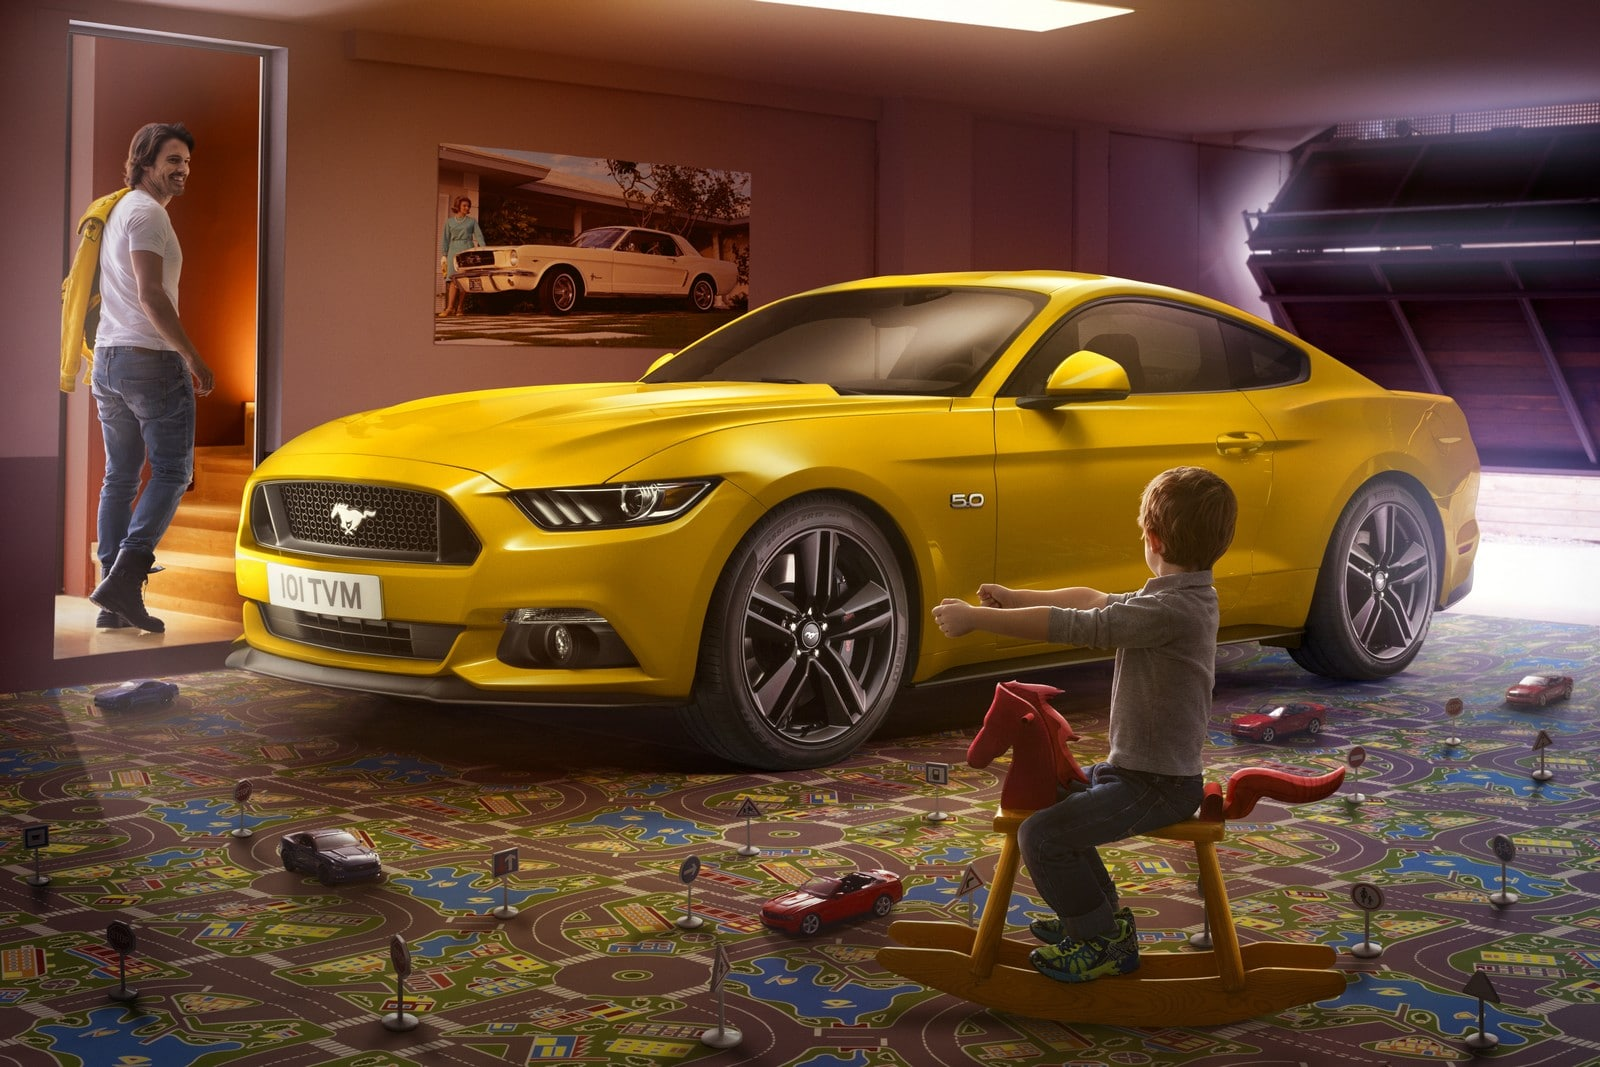 ford mustang 2015 le v8 moins de 50 000. Black Bedroom Furniture Sets. Home Design Ideas